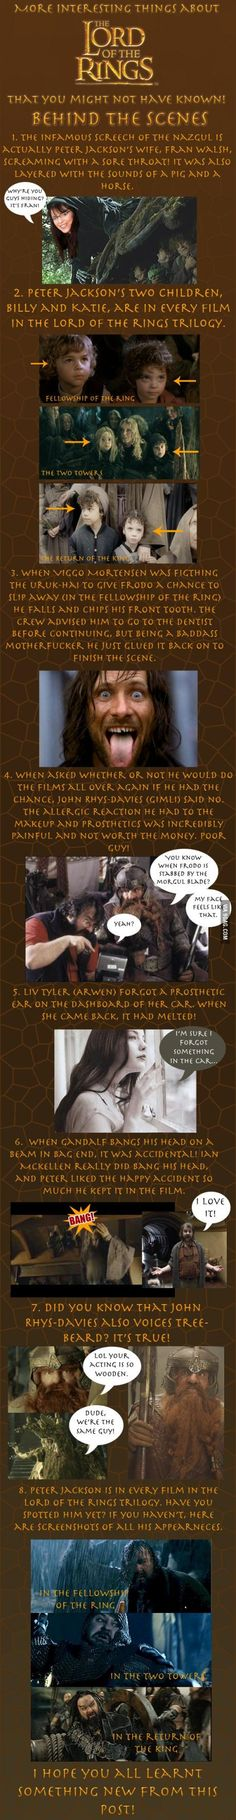 Some facts about the Lord of the Rings